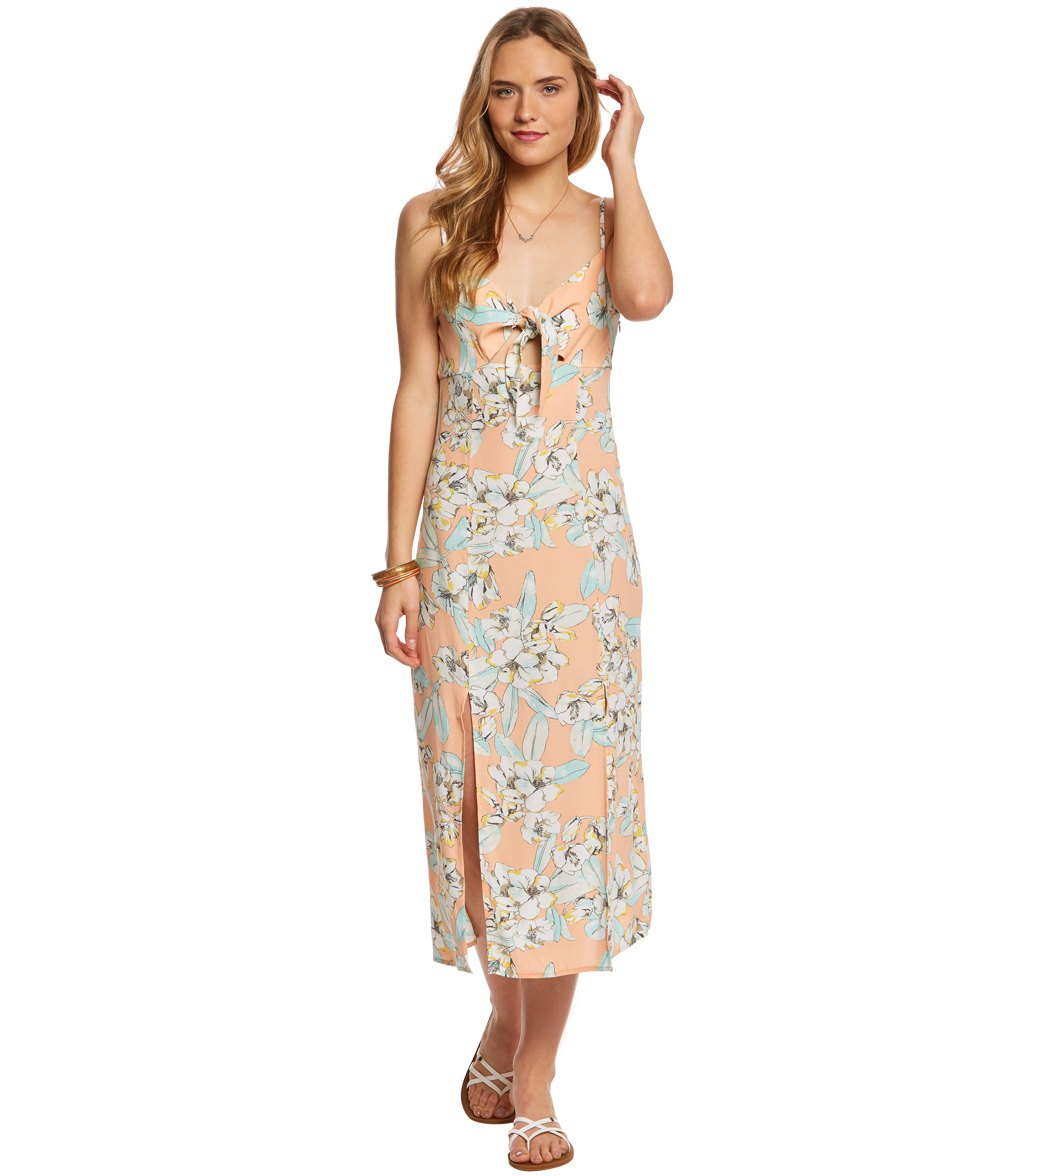 947371d6c0f MINKPINK Palm Springs Midi Dress at SwimOutlet.com - Free Shipping